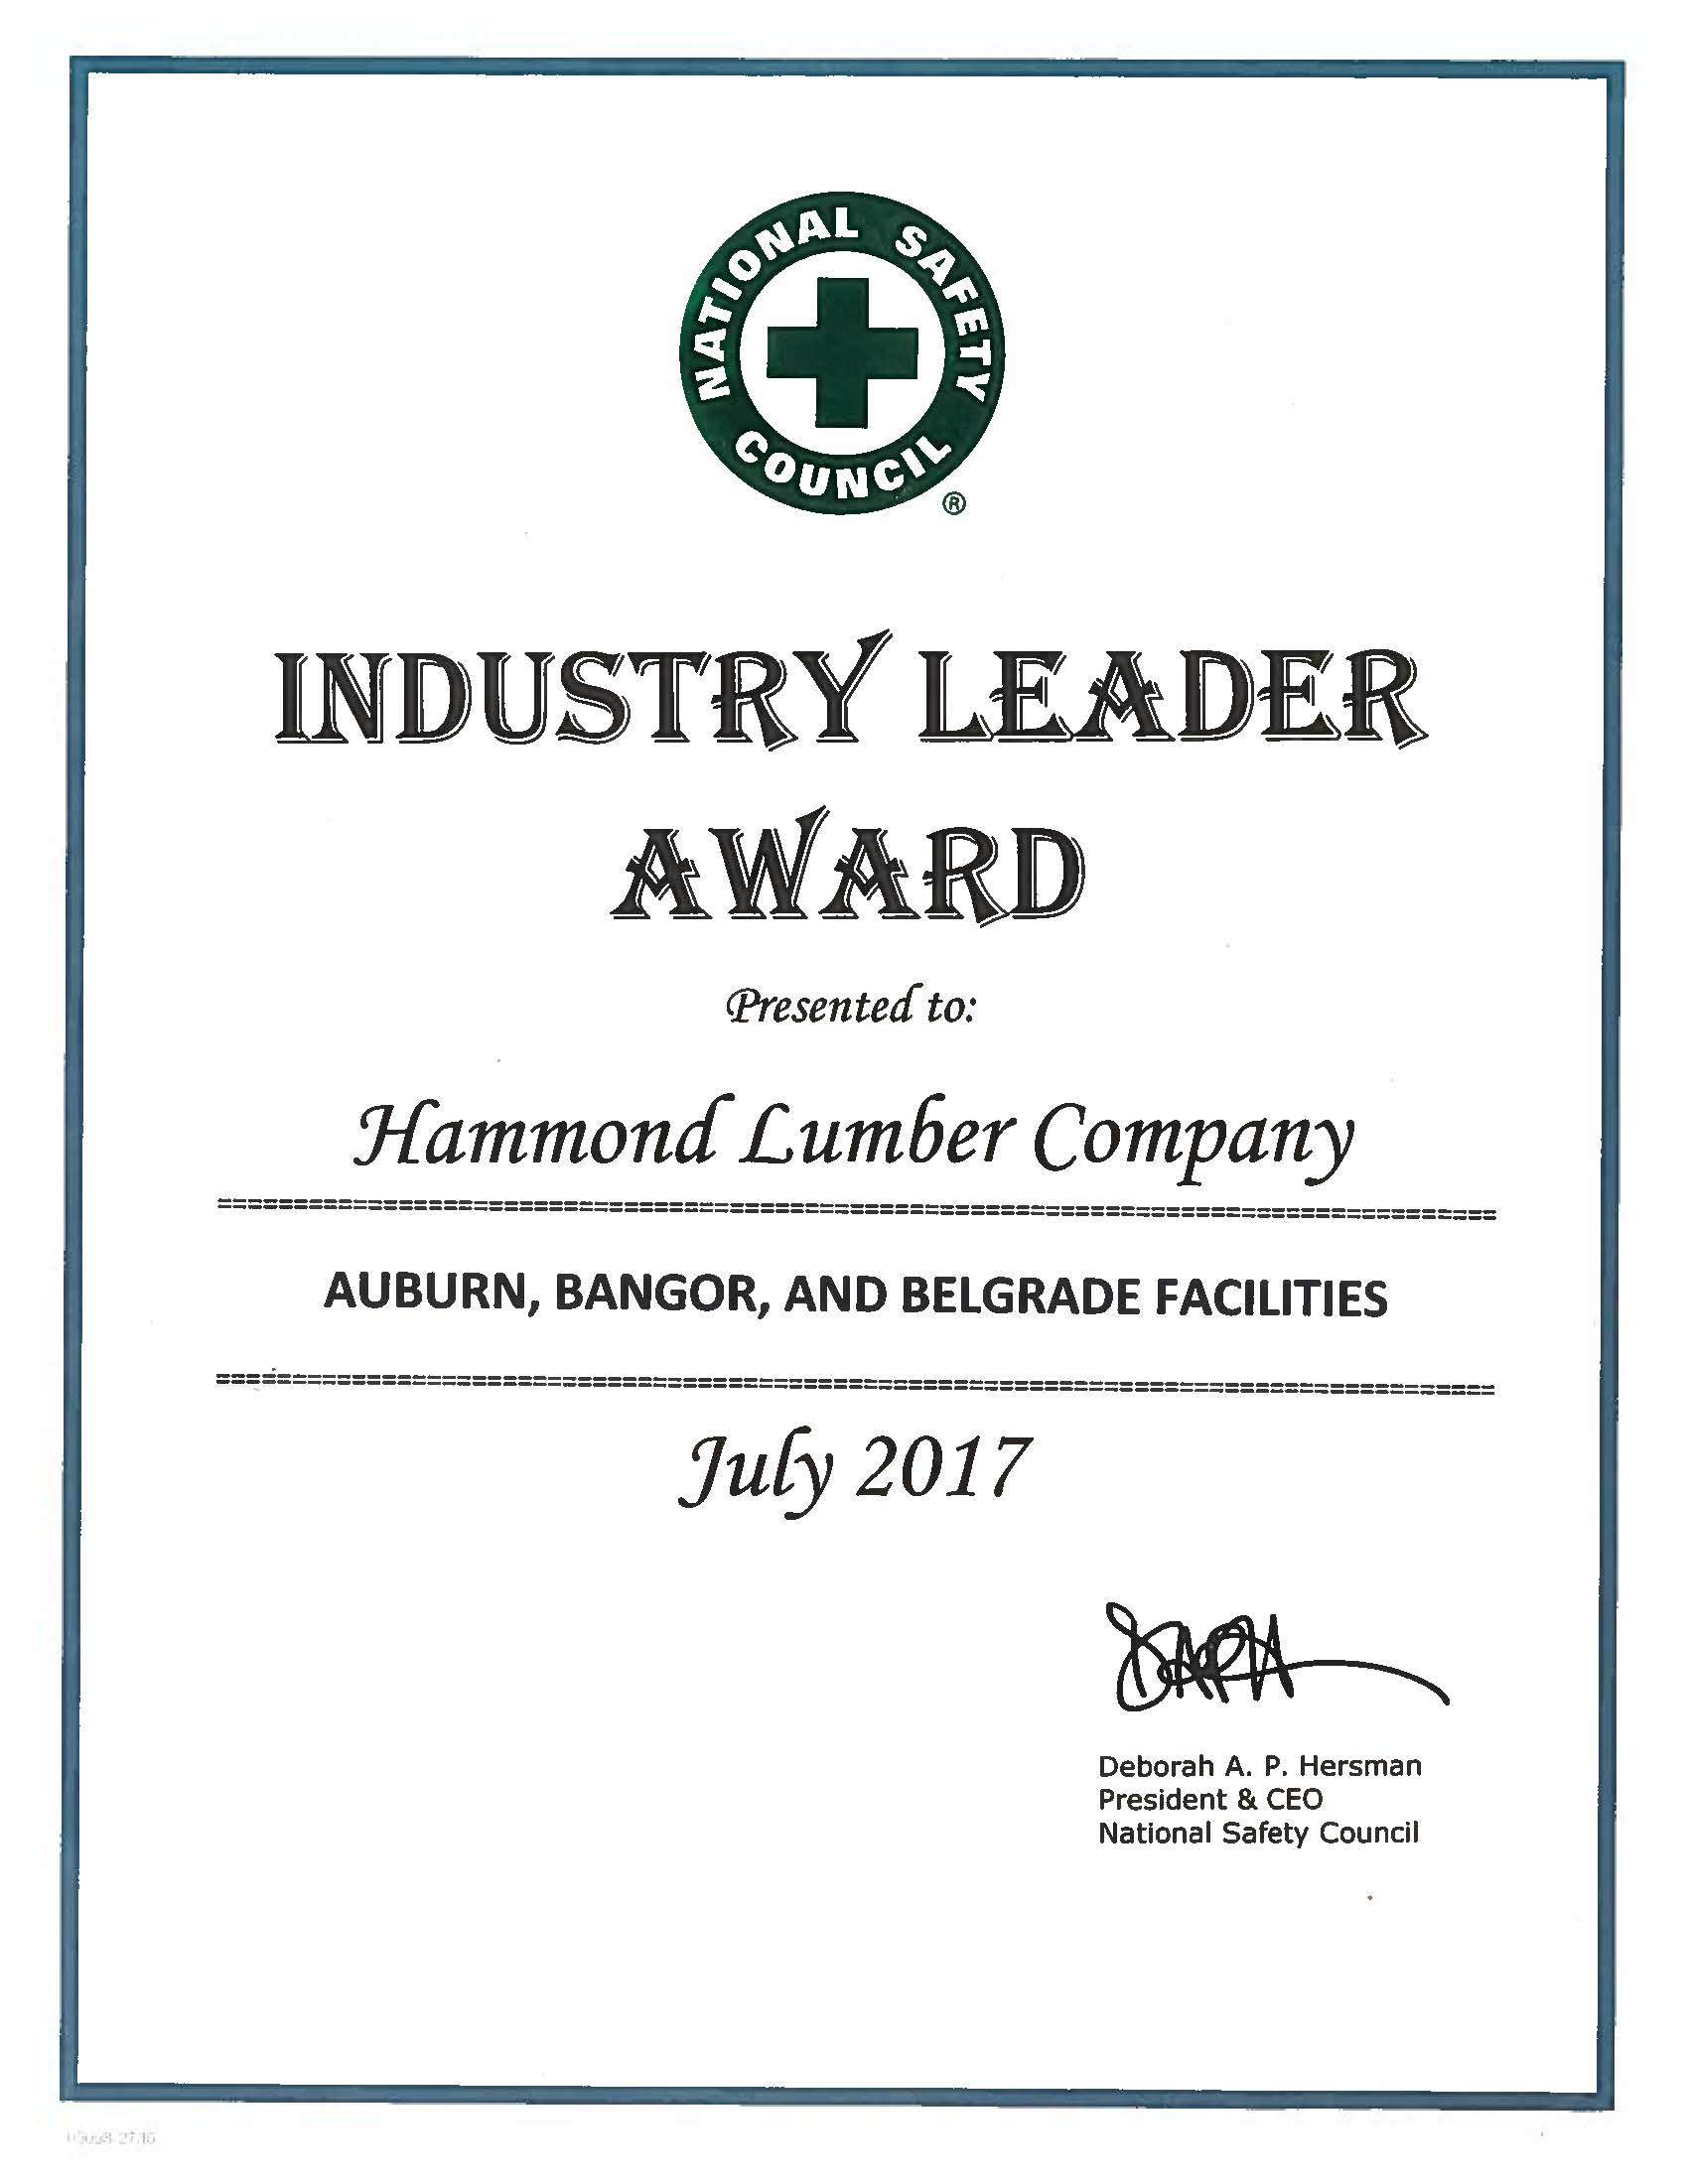 Industry Leader Award 2017 National Safety Council Hammond Lumber Company